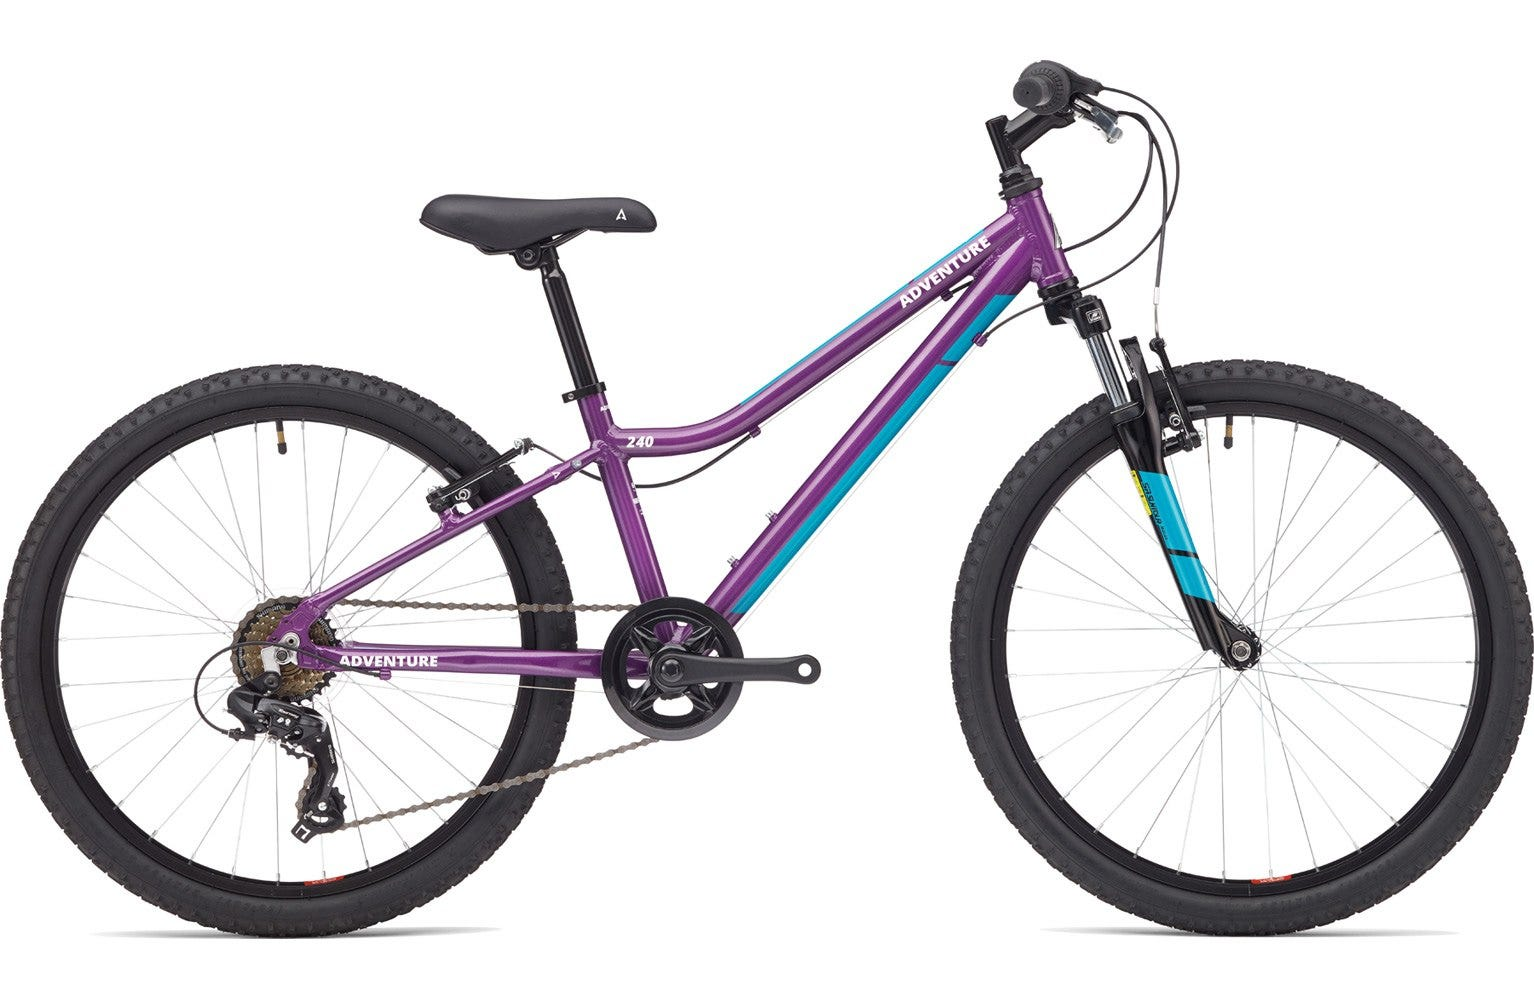 Adventure 240 Purple 24 inch